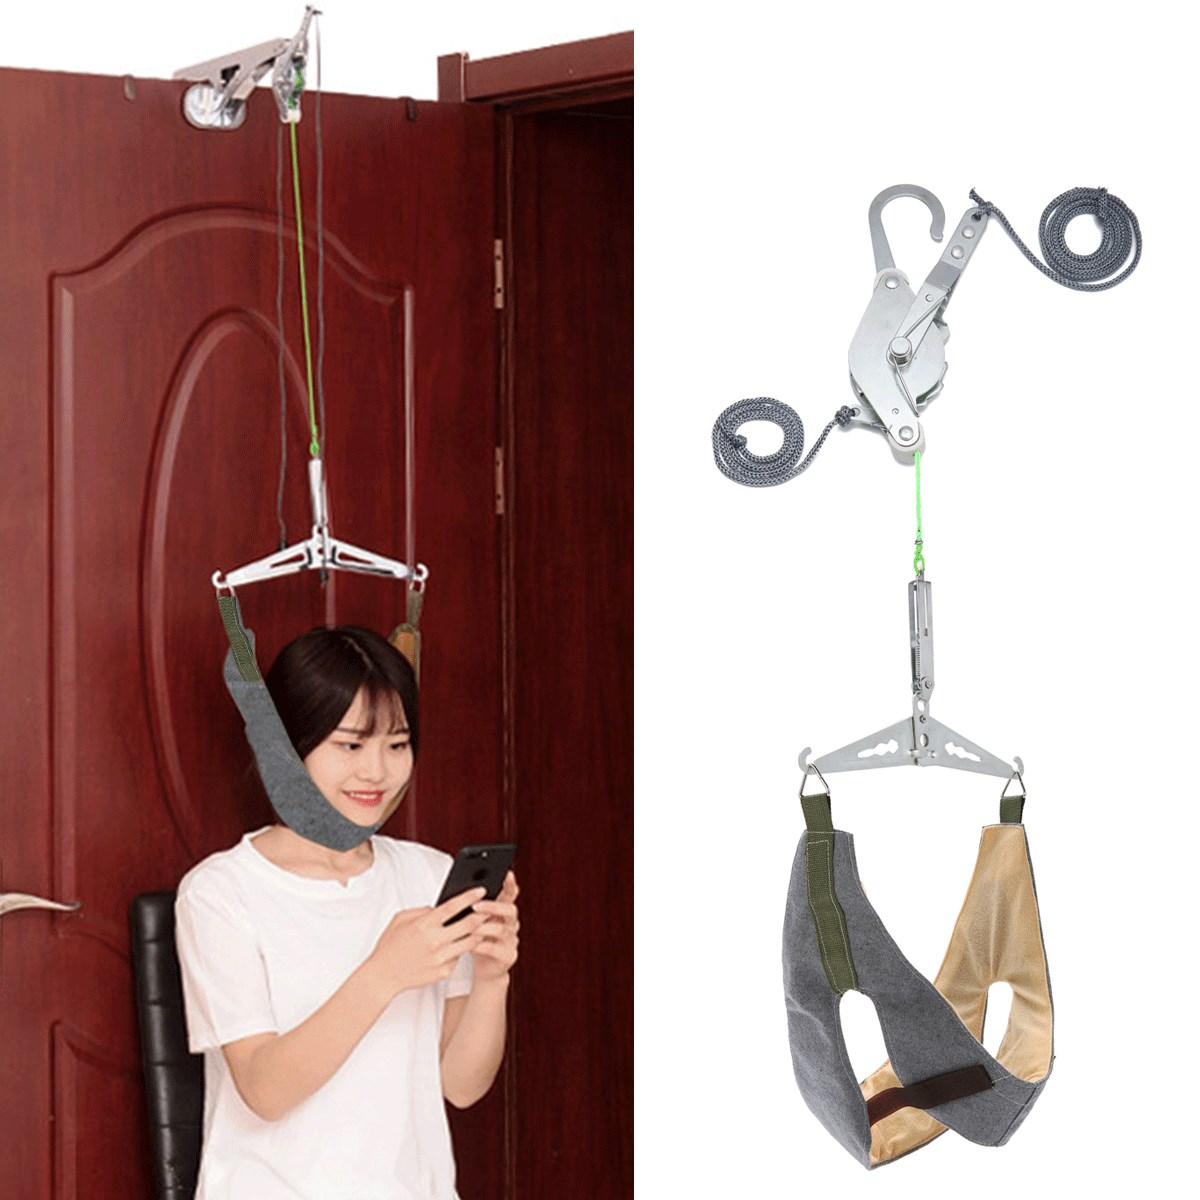 Cervical Traction Over Door Neck Massager Device Kit Stretcher Adjustable Chiropractic Back Head Massager Relaxation